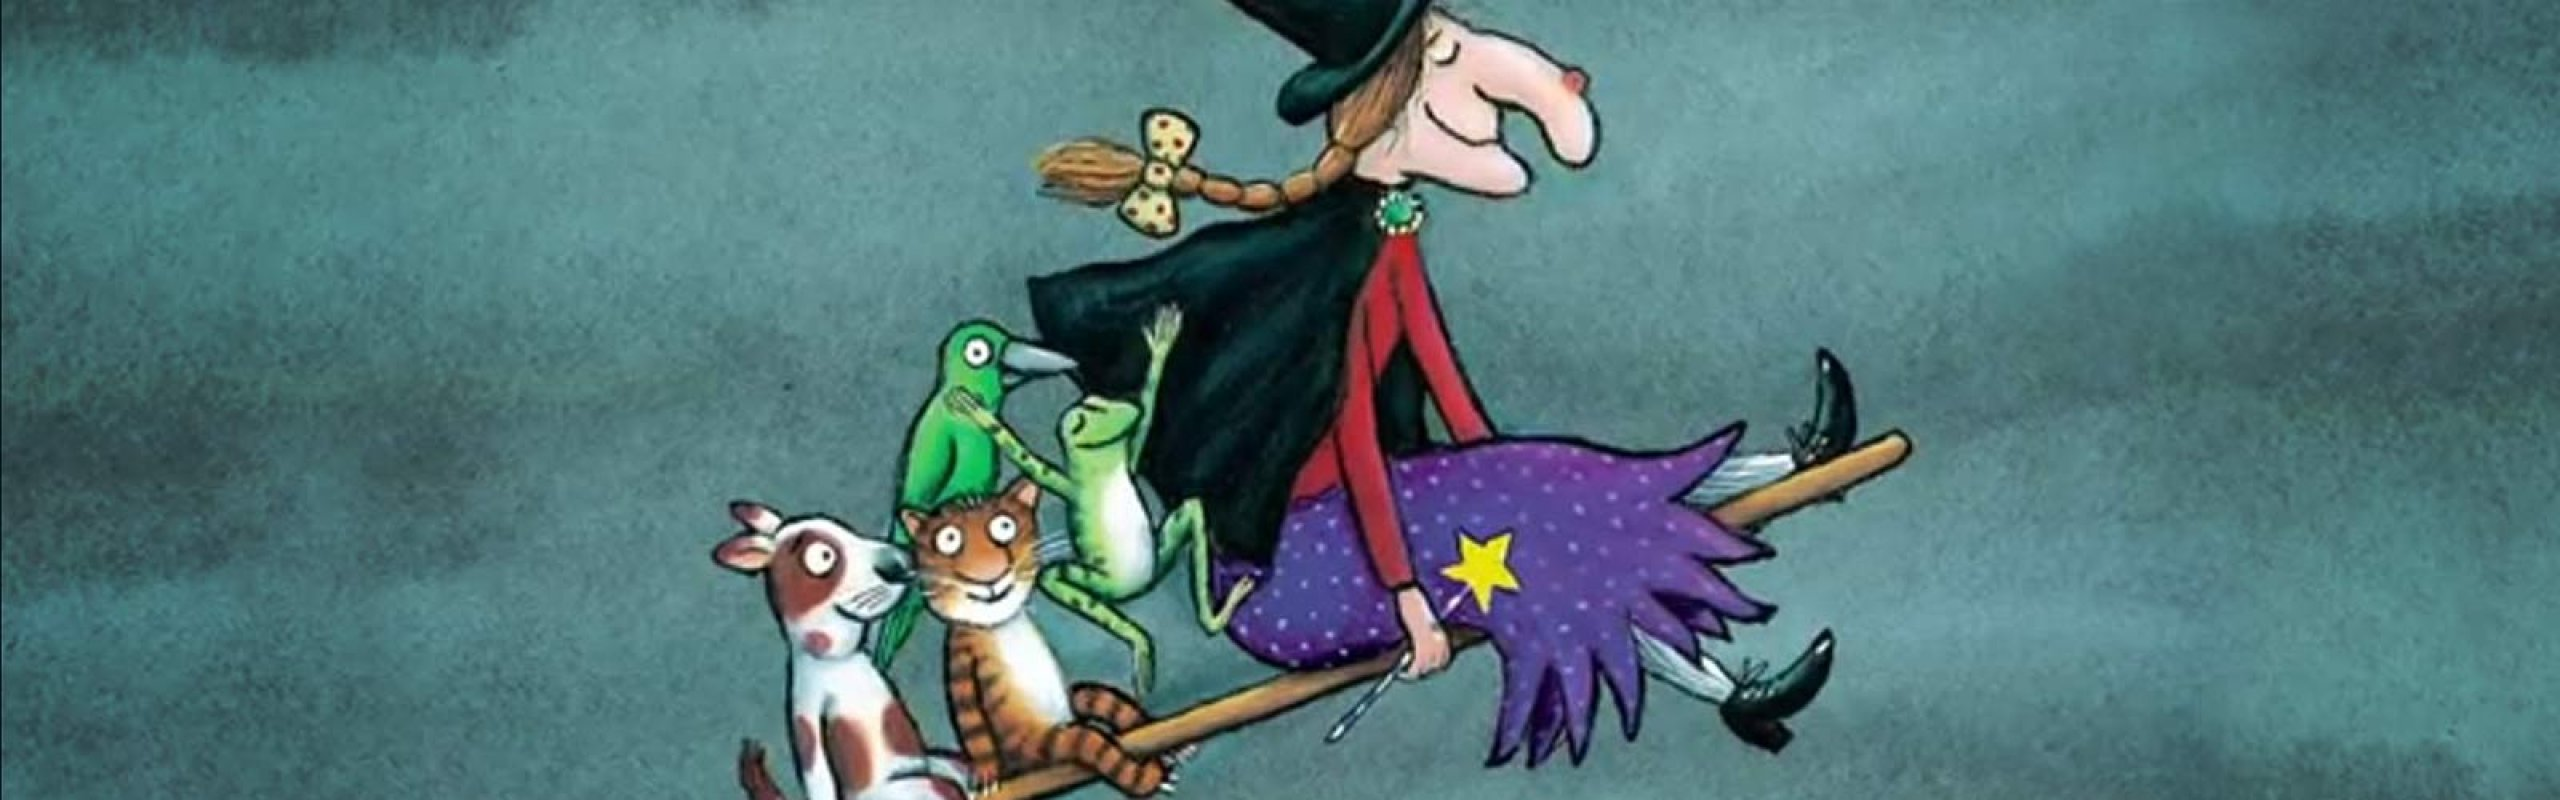 It's Storytime! Room on the broom